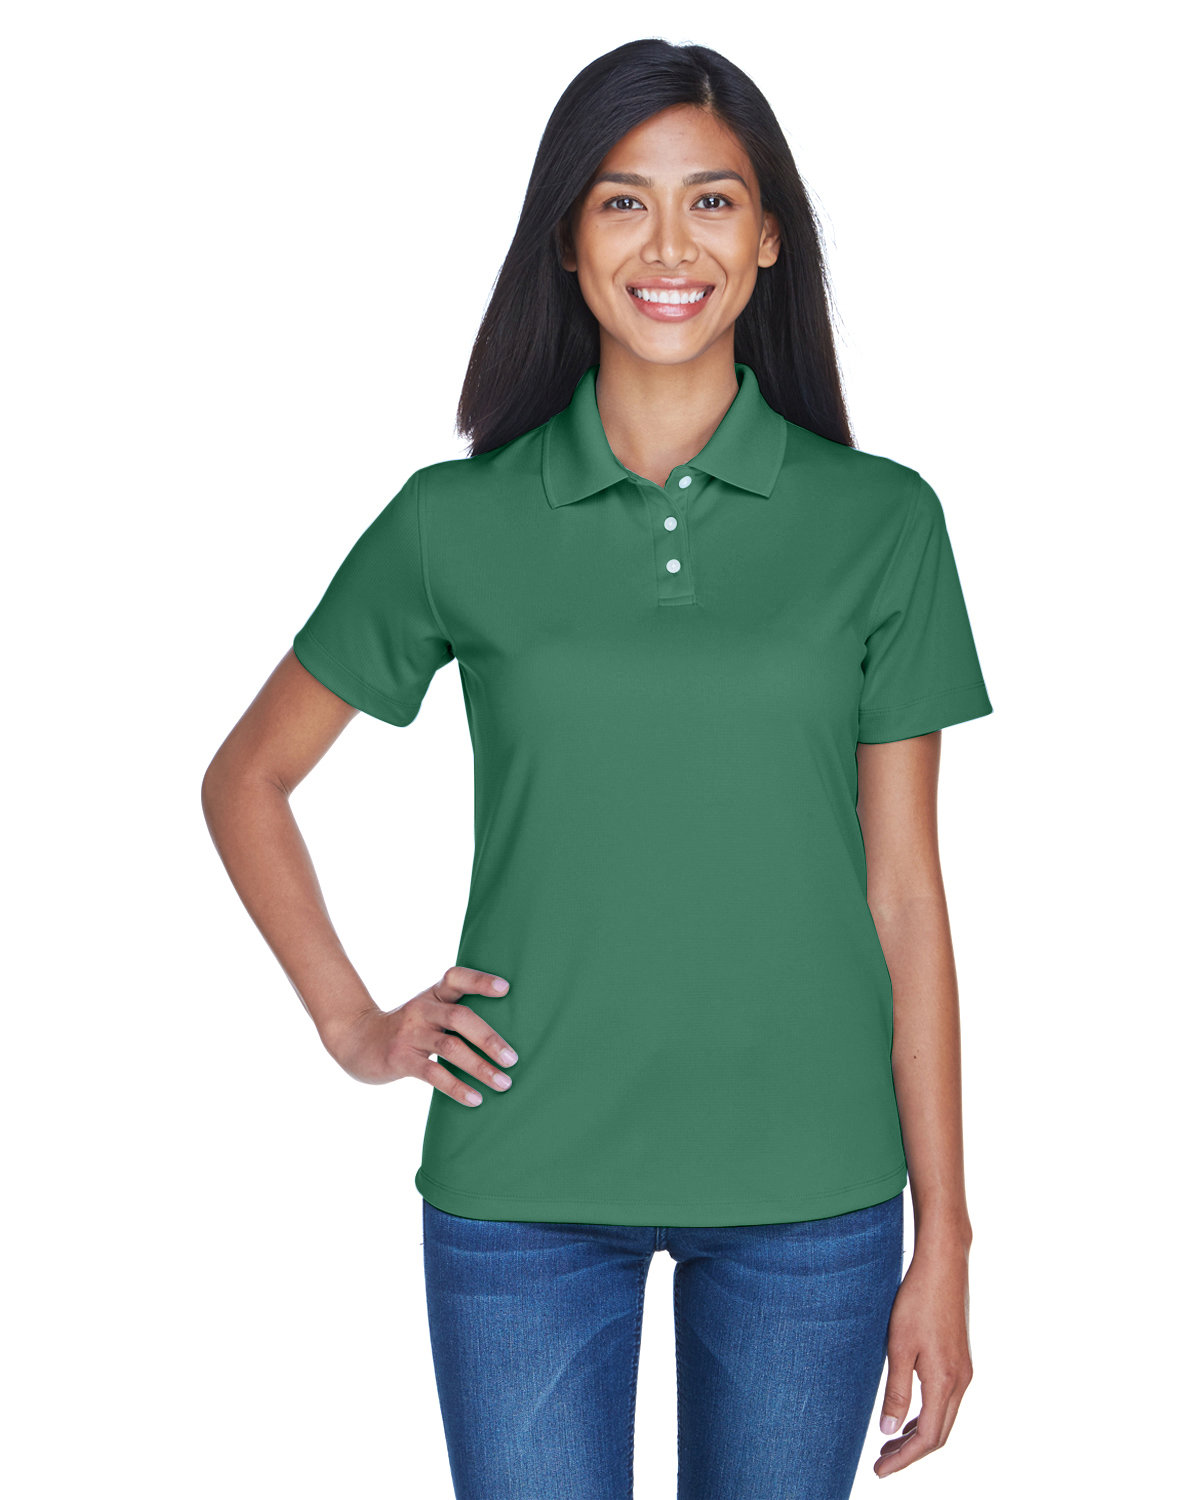 UltraClub Ladies' Cool & Dry Stain-Release Performance Polo FOREST GREEN